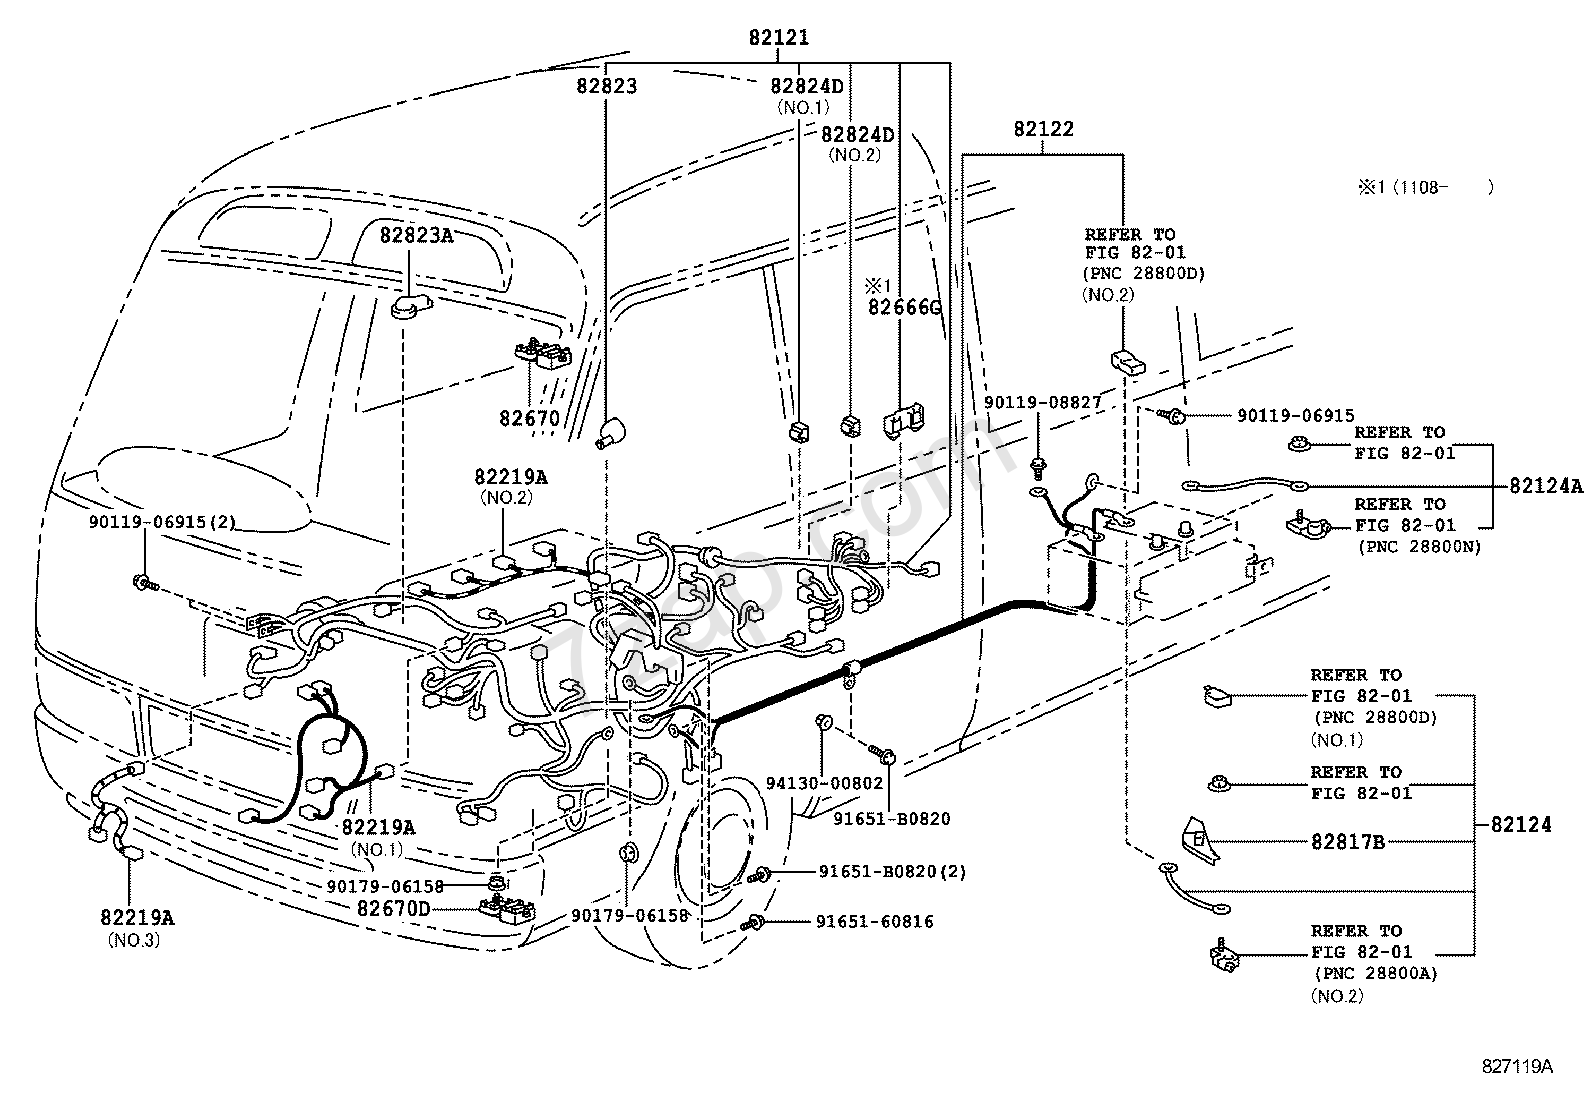 Typical Wiring Diagram For 1501 : 31 Wiring Diagram Images